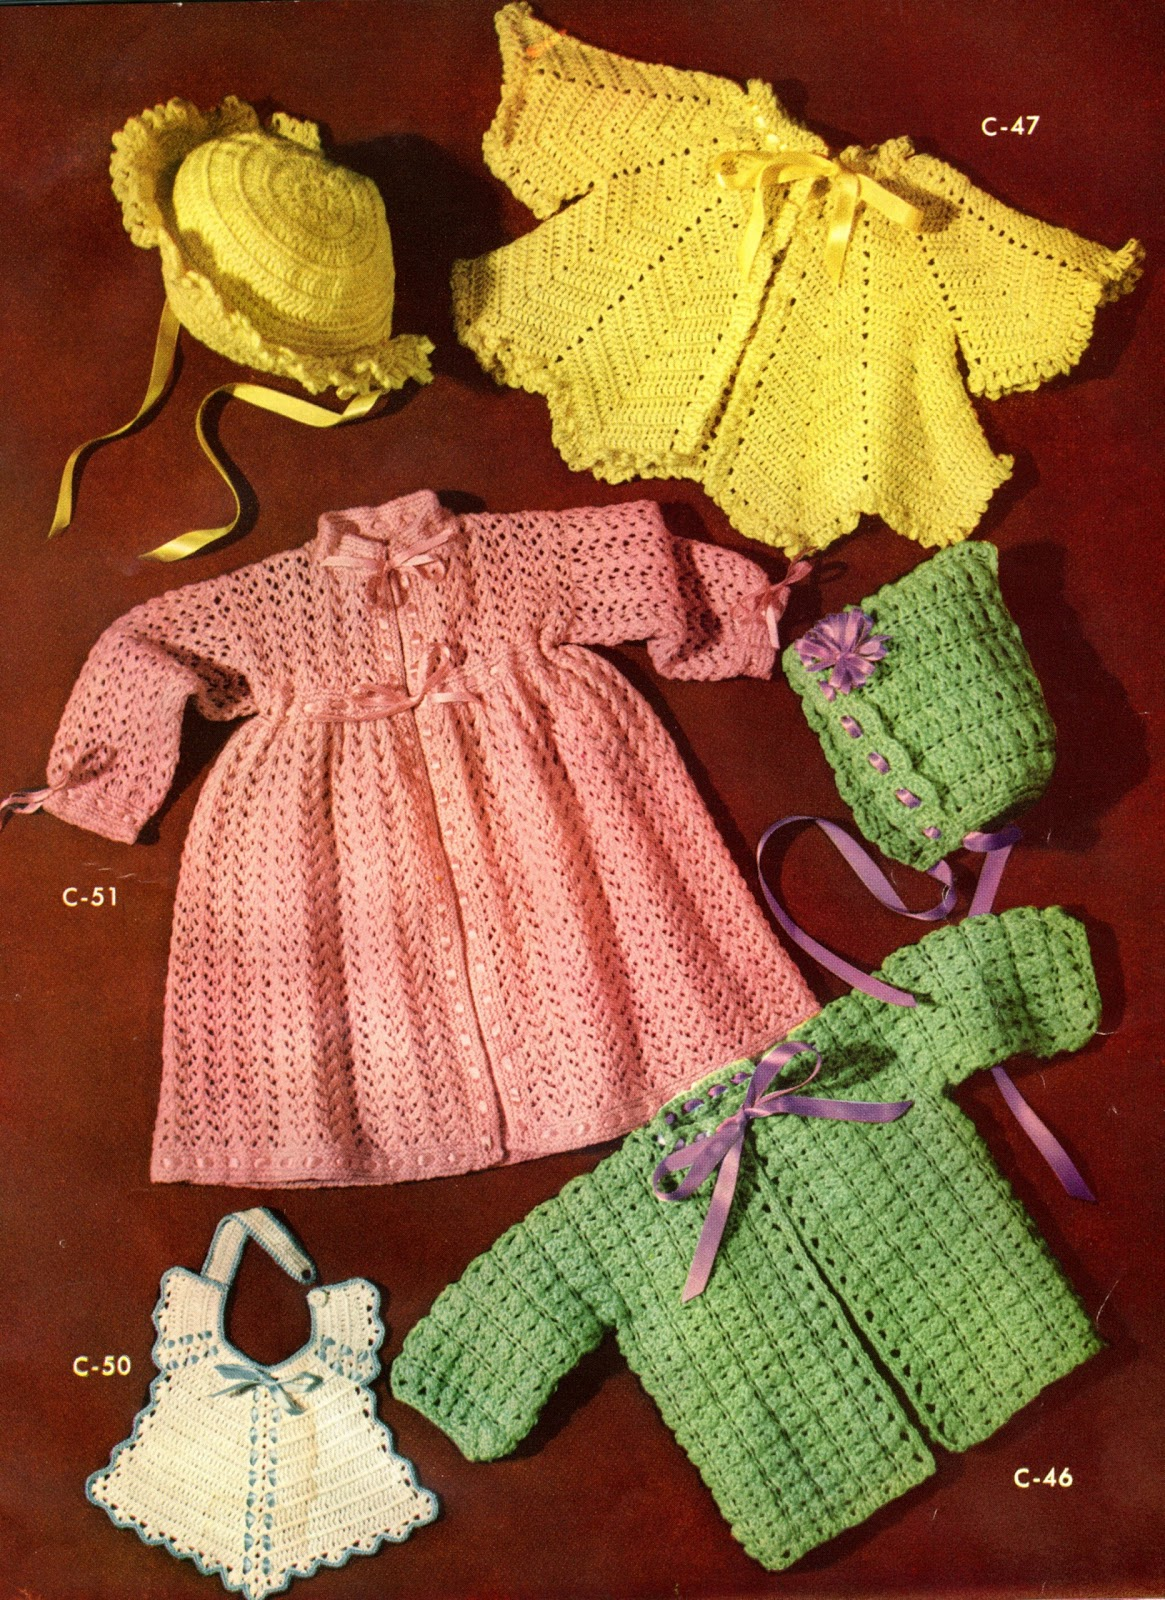 Donnas Crochet Designs Blog of Free Patterns: Great Vintage Crochet ...